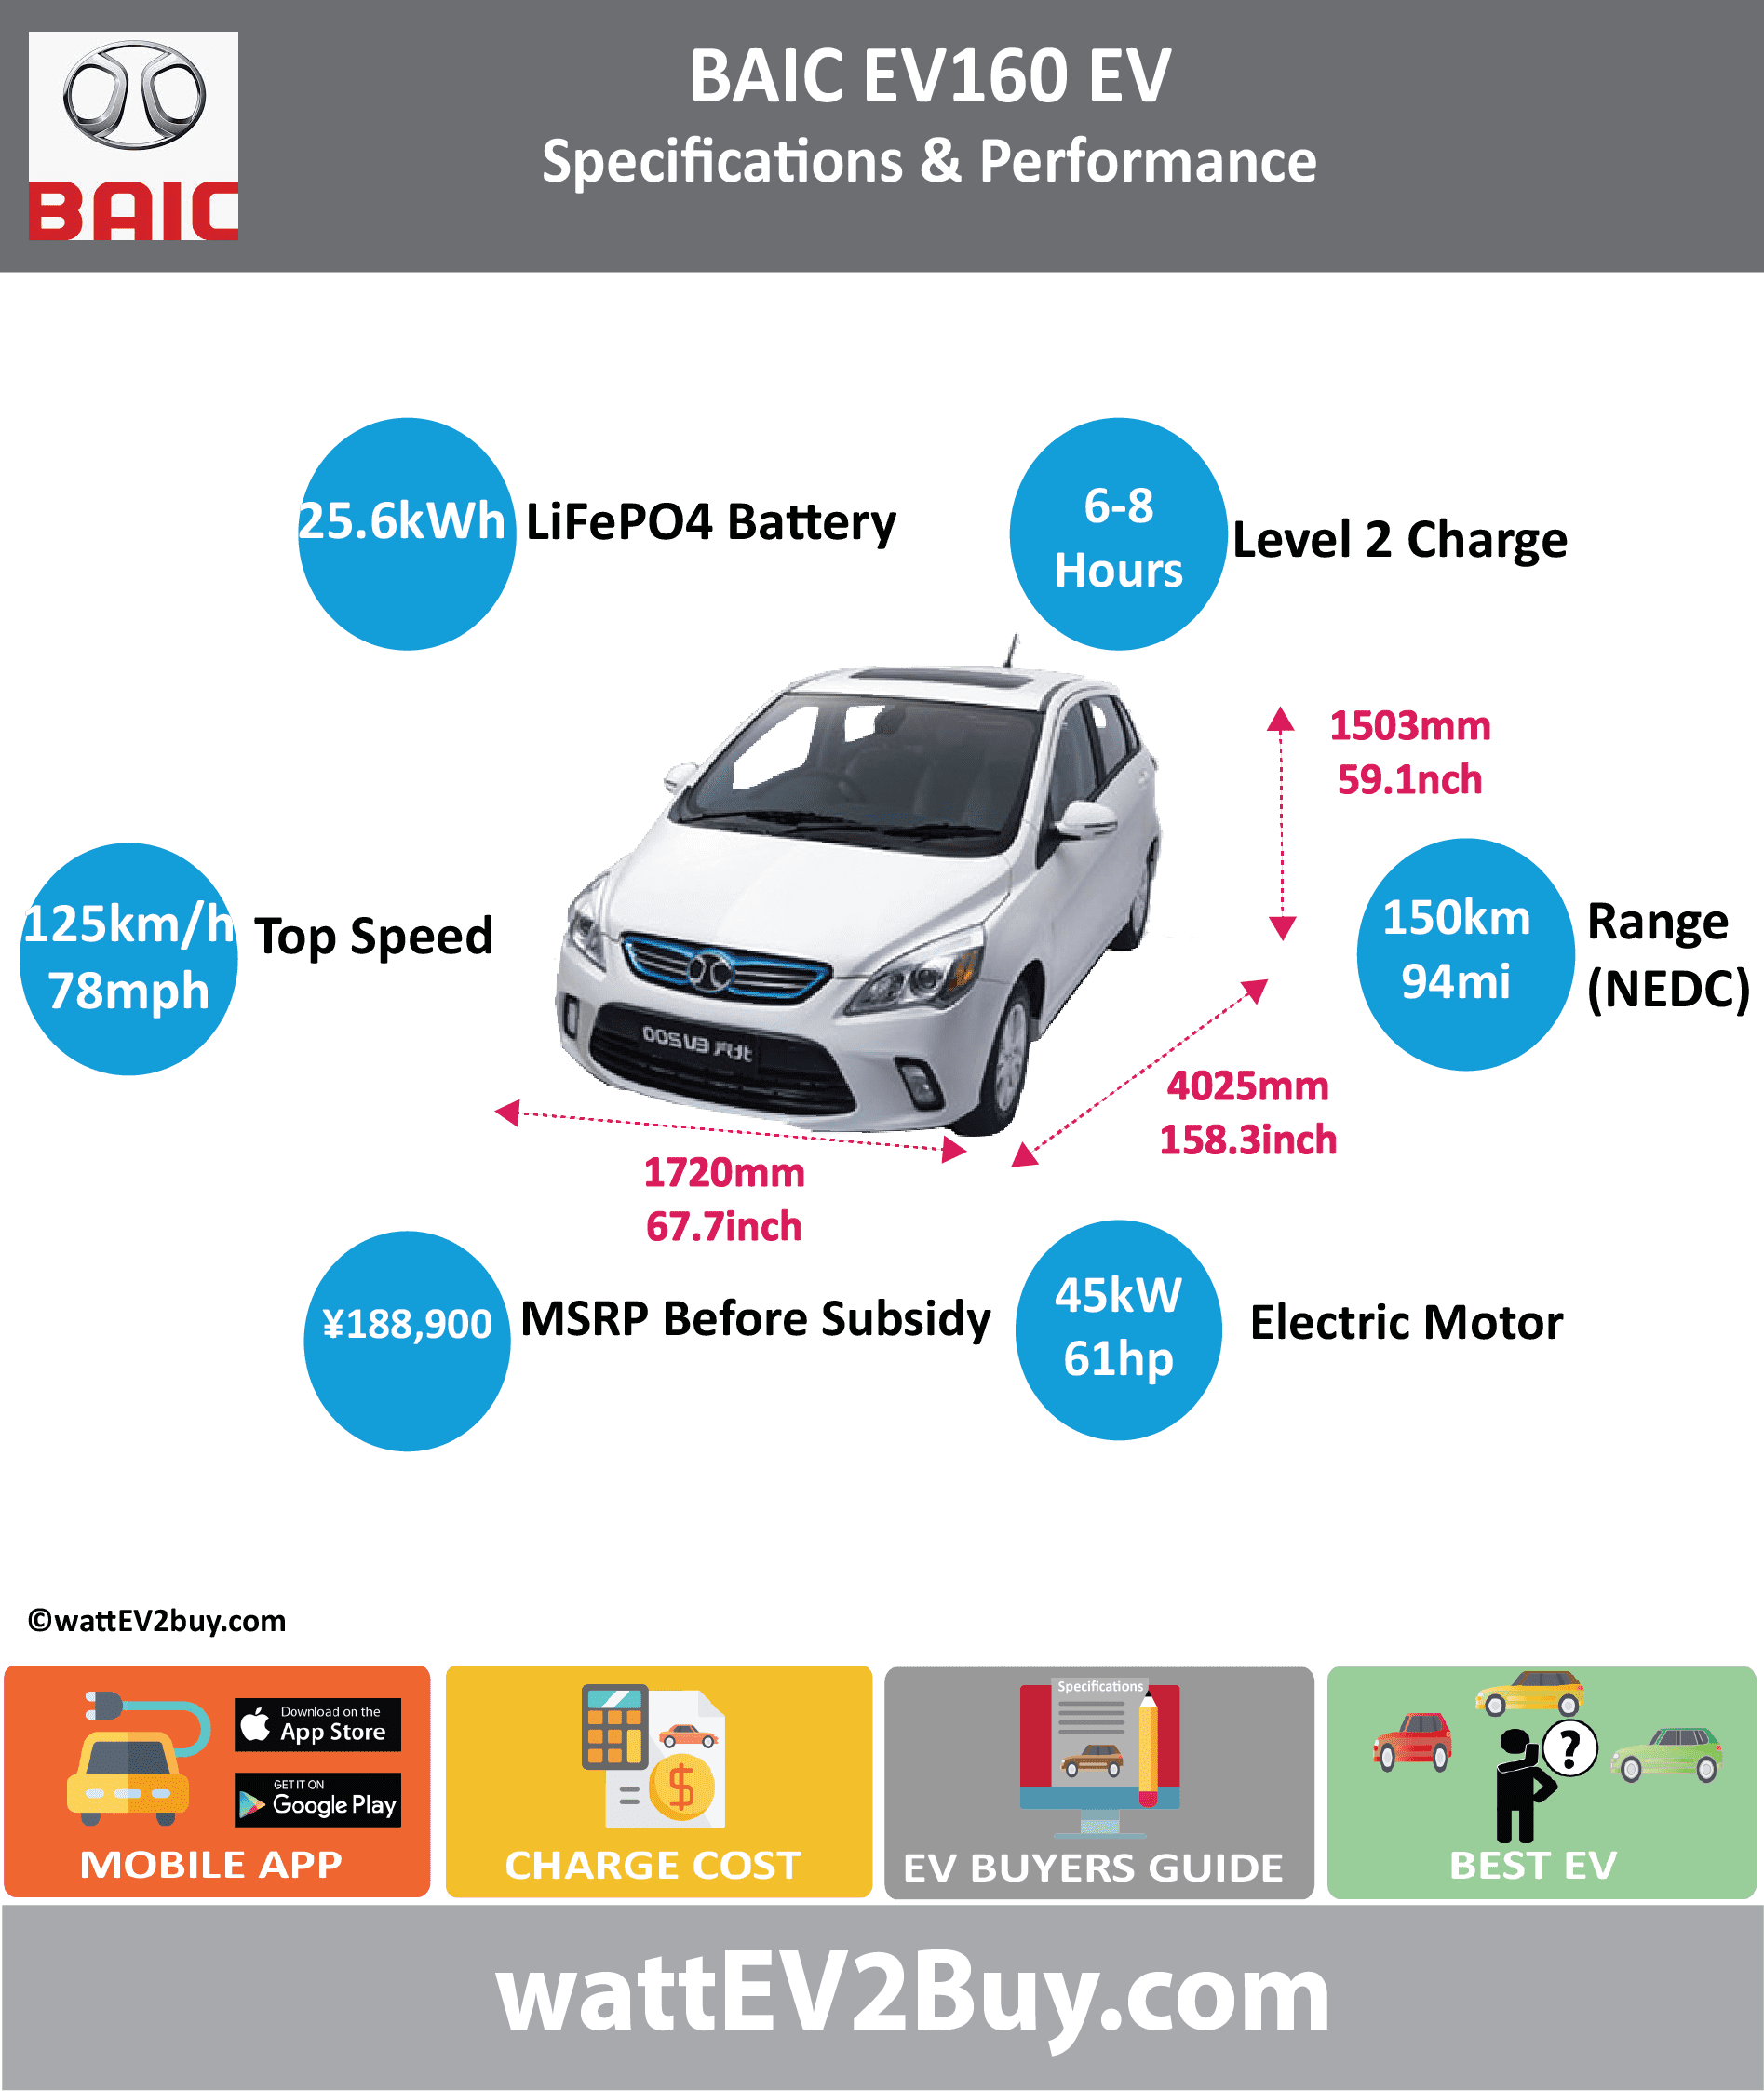 BAIC E160 EV specs wattev2Buy.com 2015 2016 2017 Battery Chemistry Li-Ion Phosphate Battery Capacity kWh 25.6 Voltage V Amps Ah Cells Modules Cycles 2000 Depth of Discharge (DOD) 90% Energy Density Wh/kg Battery Manufacturer ALT Pride Battery Warranty - years 3 Battery Warranty - km 120000 Battery Electric Range - NEDC Mi 93.8 Battery Electric Range - NEDC km 150 Electric Top Speed - mph 78.1 Electric Top Speed - km/h 125 Acceleration 0 - 100km/h sec 13 Onboard Charger kW 3.3 LV 1 Charge kW LV 1 Charge Time (Hours) LV 2 Charge kW LV 2 Charge Time (Hours) 8 LV 3 CCS/Combo kW LV 3 Charge Time (min to 80%) 1 Charge Connector MPGe Combined - miles MPGe Combined - km MPGe City - miles MPGe City - km MPGe Highway - miles MPGe Highway - km Max Power - hp 61 Max Power - kW 45 Max Torque - lb.ft 106 Max Torque - N.m 144 Electric Motor Rear Electric Motor Front Electric Motor Output Transmission Energy Consumption kWh/100km 15 CHINA MSRP (before incentives & destination) ¥188,922.00 Vehicle Doors Seating Dimensions GVWR (kg) Payload Capacity (lbs) Towing Capacity (lbs) Ground Clearance (mm) Lenght (mm) 4025 Width (mm) 1720 Height (mm) 1503 Wheelbase (mm) 0 Lenght (inc) 158.3 Width (inc) 67.7 Height (inc) 59.1 Wheelbase (inc) 0.0 Other Market Class First Delivery Safety Level Chinese Name 北汽Ev160 Model Code BJ7000BRDA-BEV WEBSITE